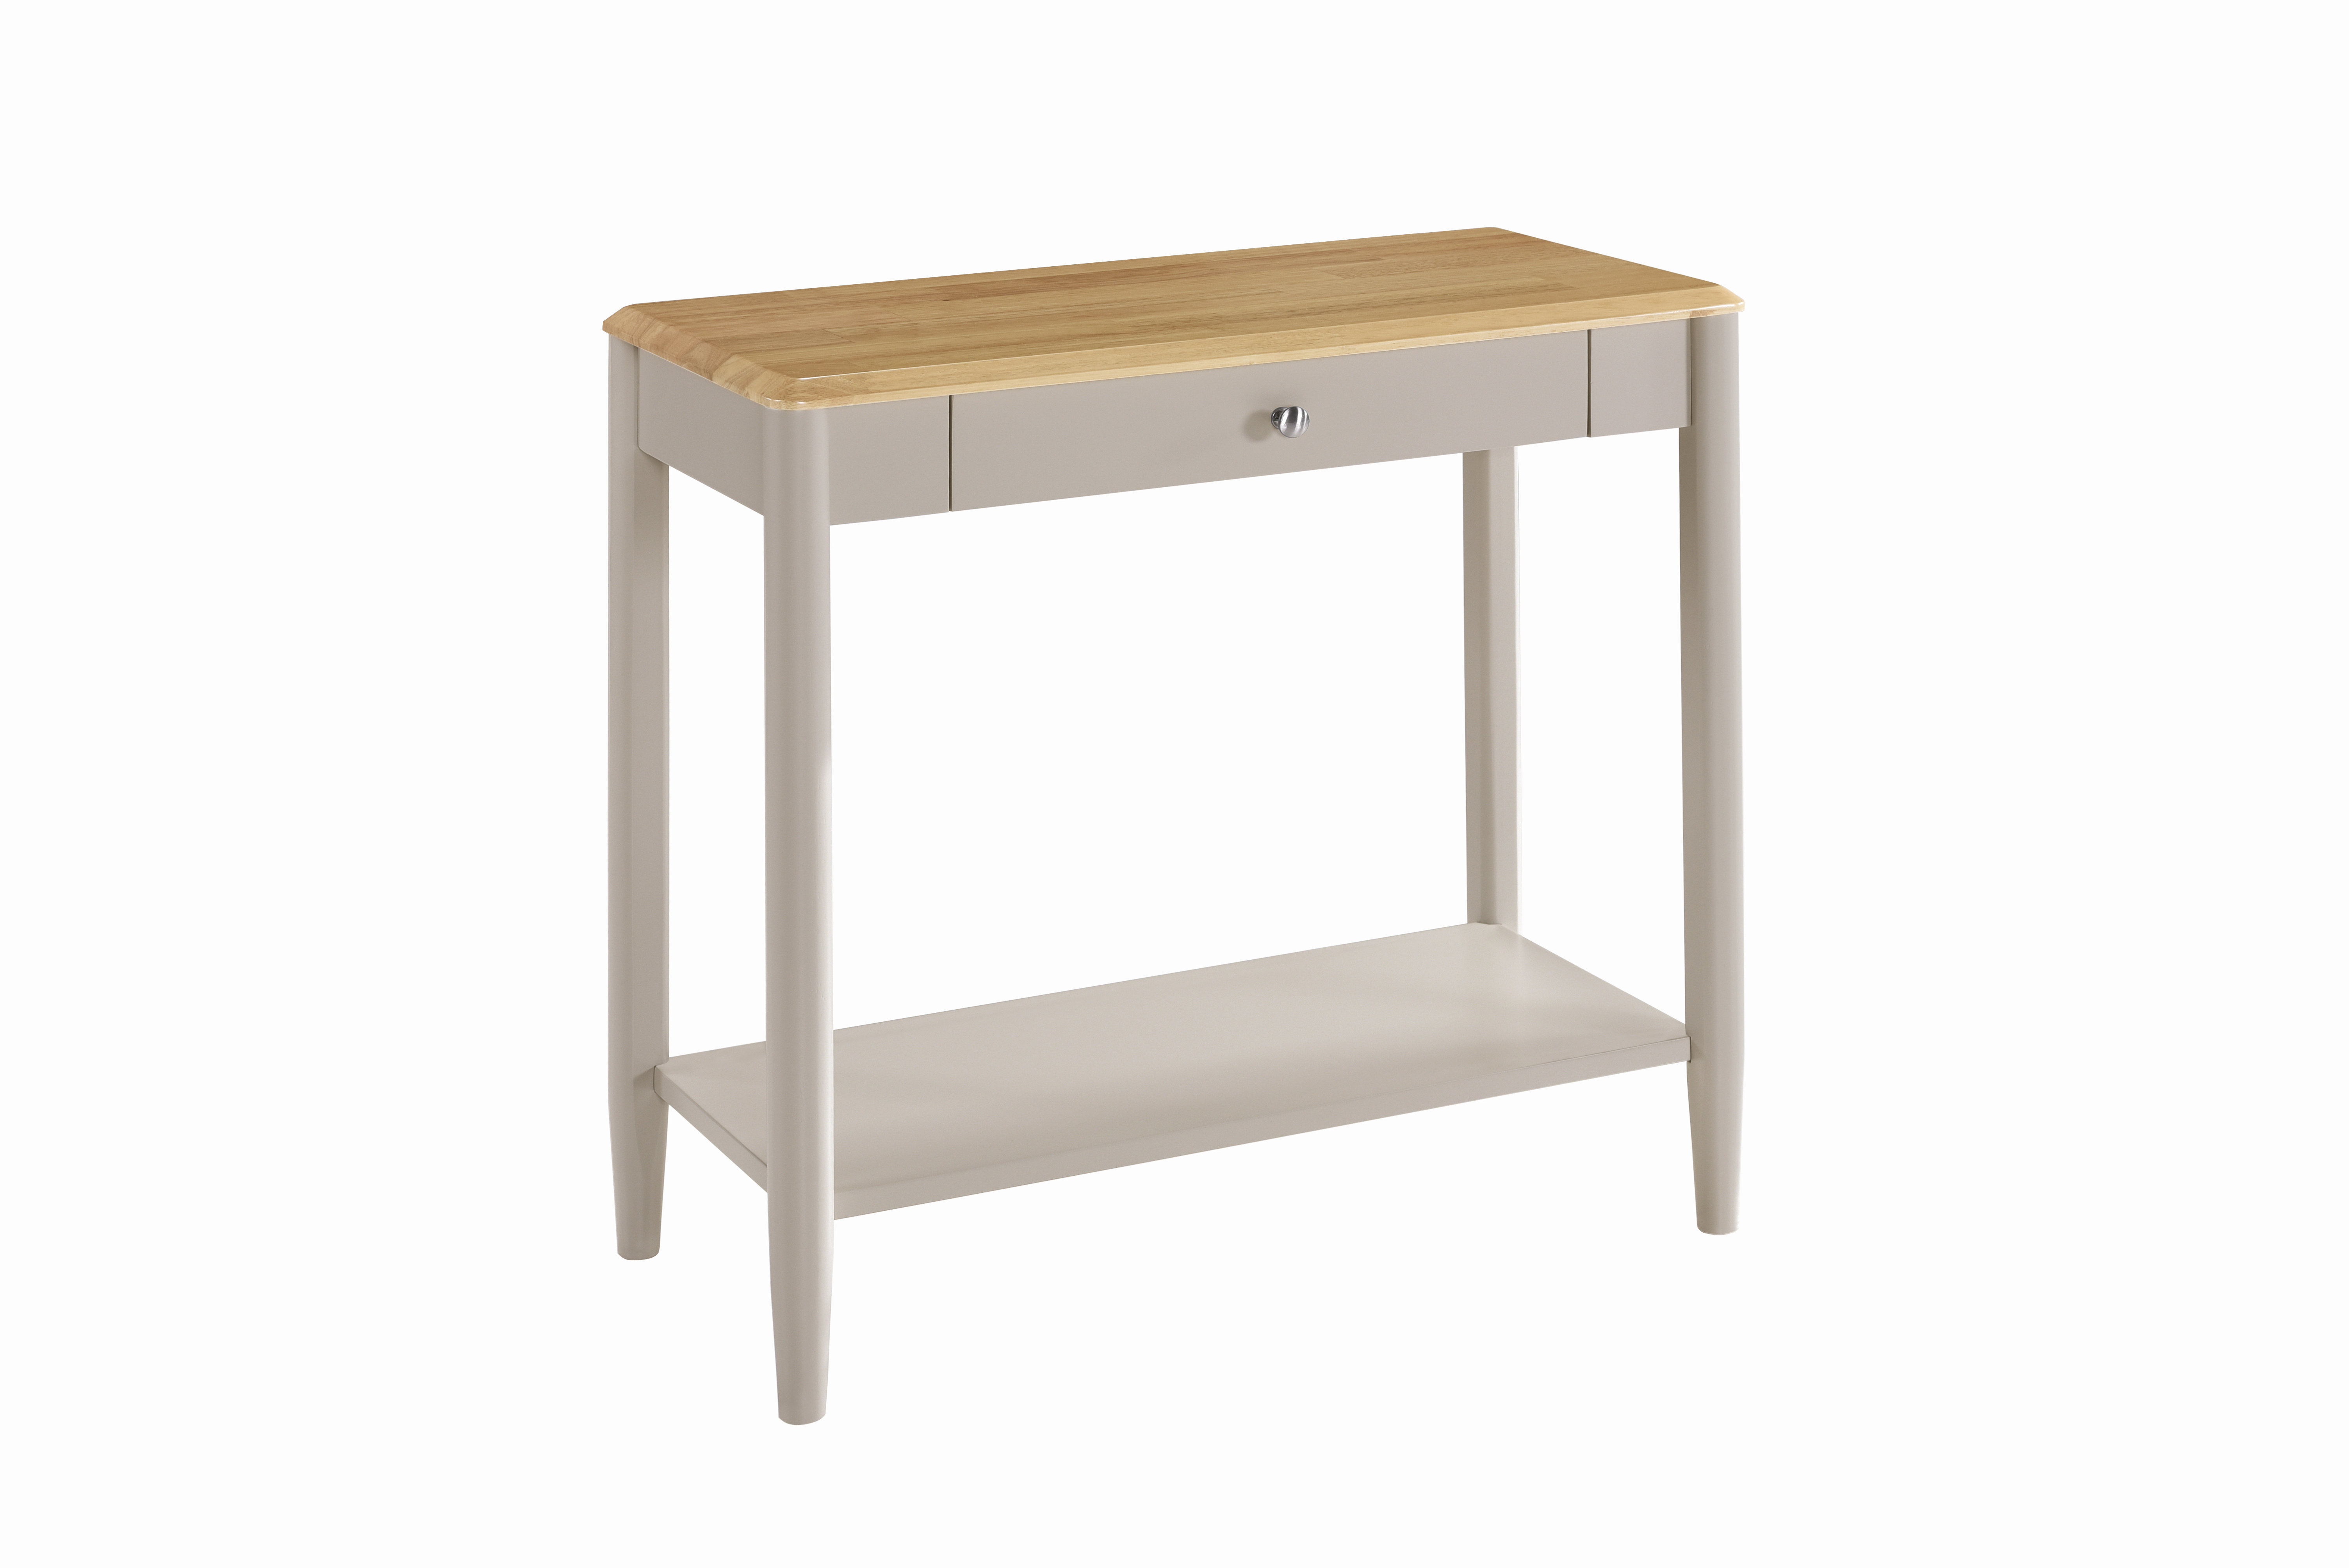 Grey Painted Console Table | Wayfair.co.uk In Mix Agate Metal Frame Console Tables (Gallery 3 of 20)